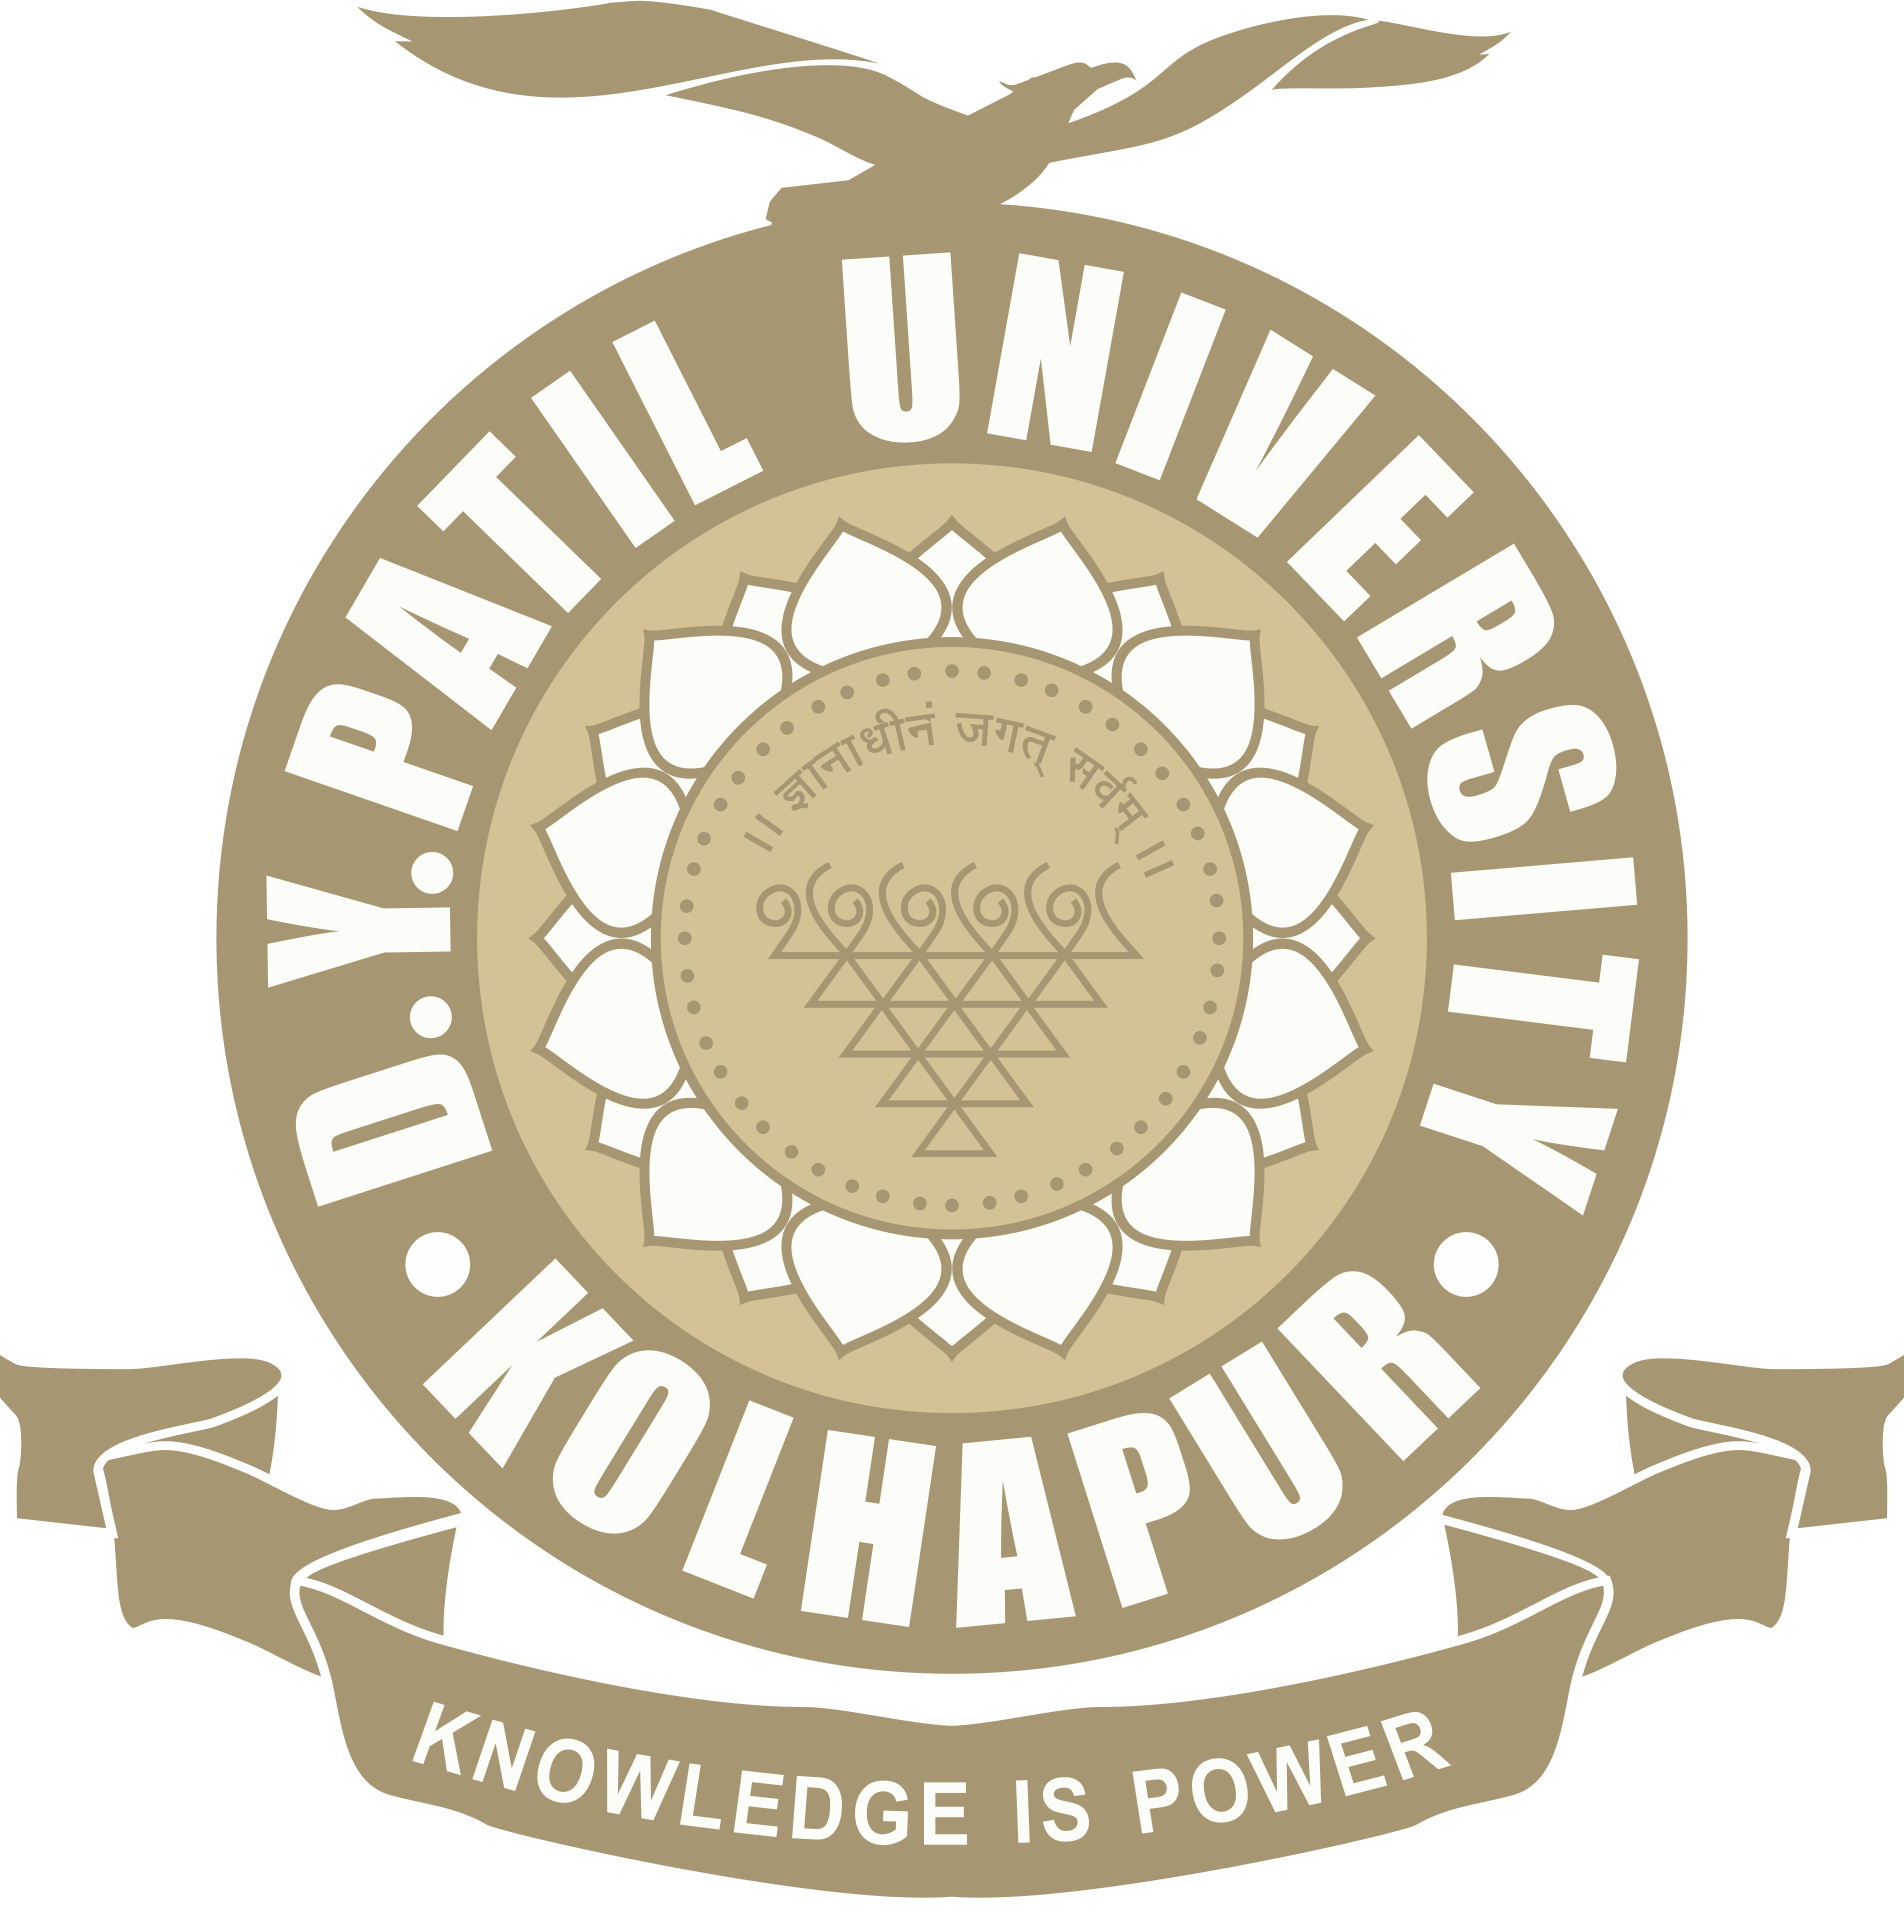 cropped-GOLDEN-LOGO-OF-UNIVERSITY.png